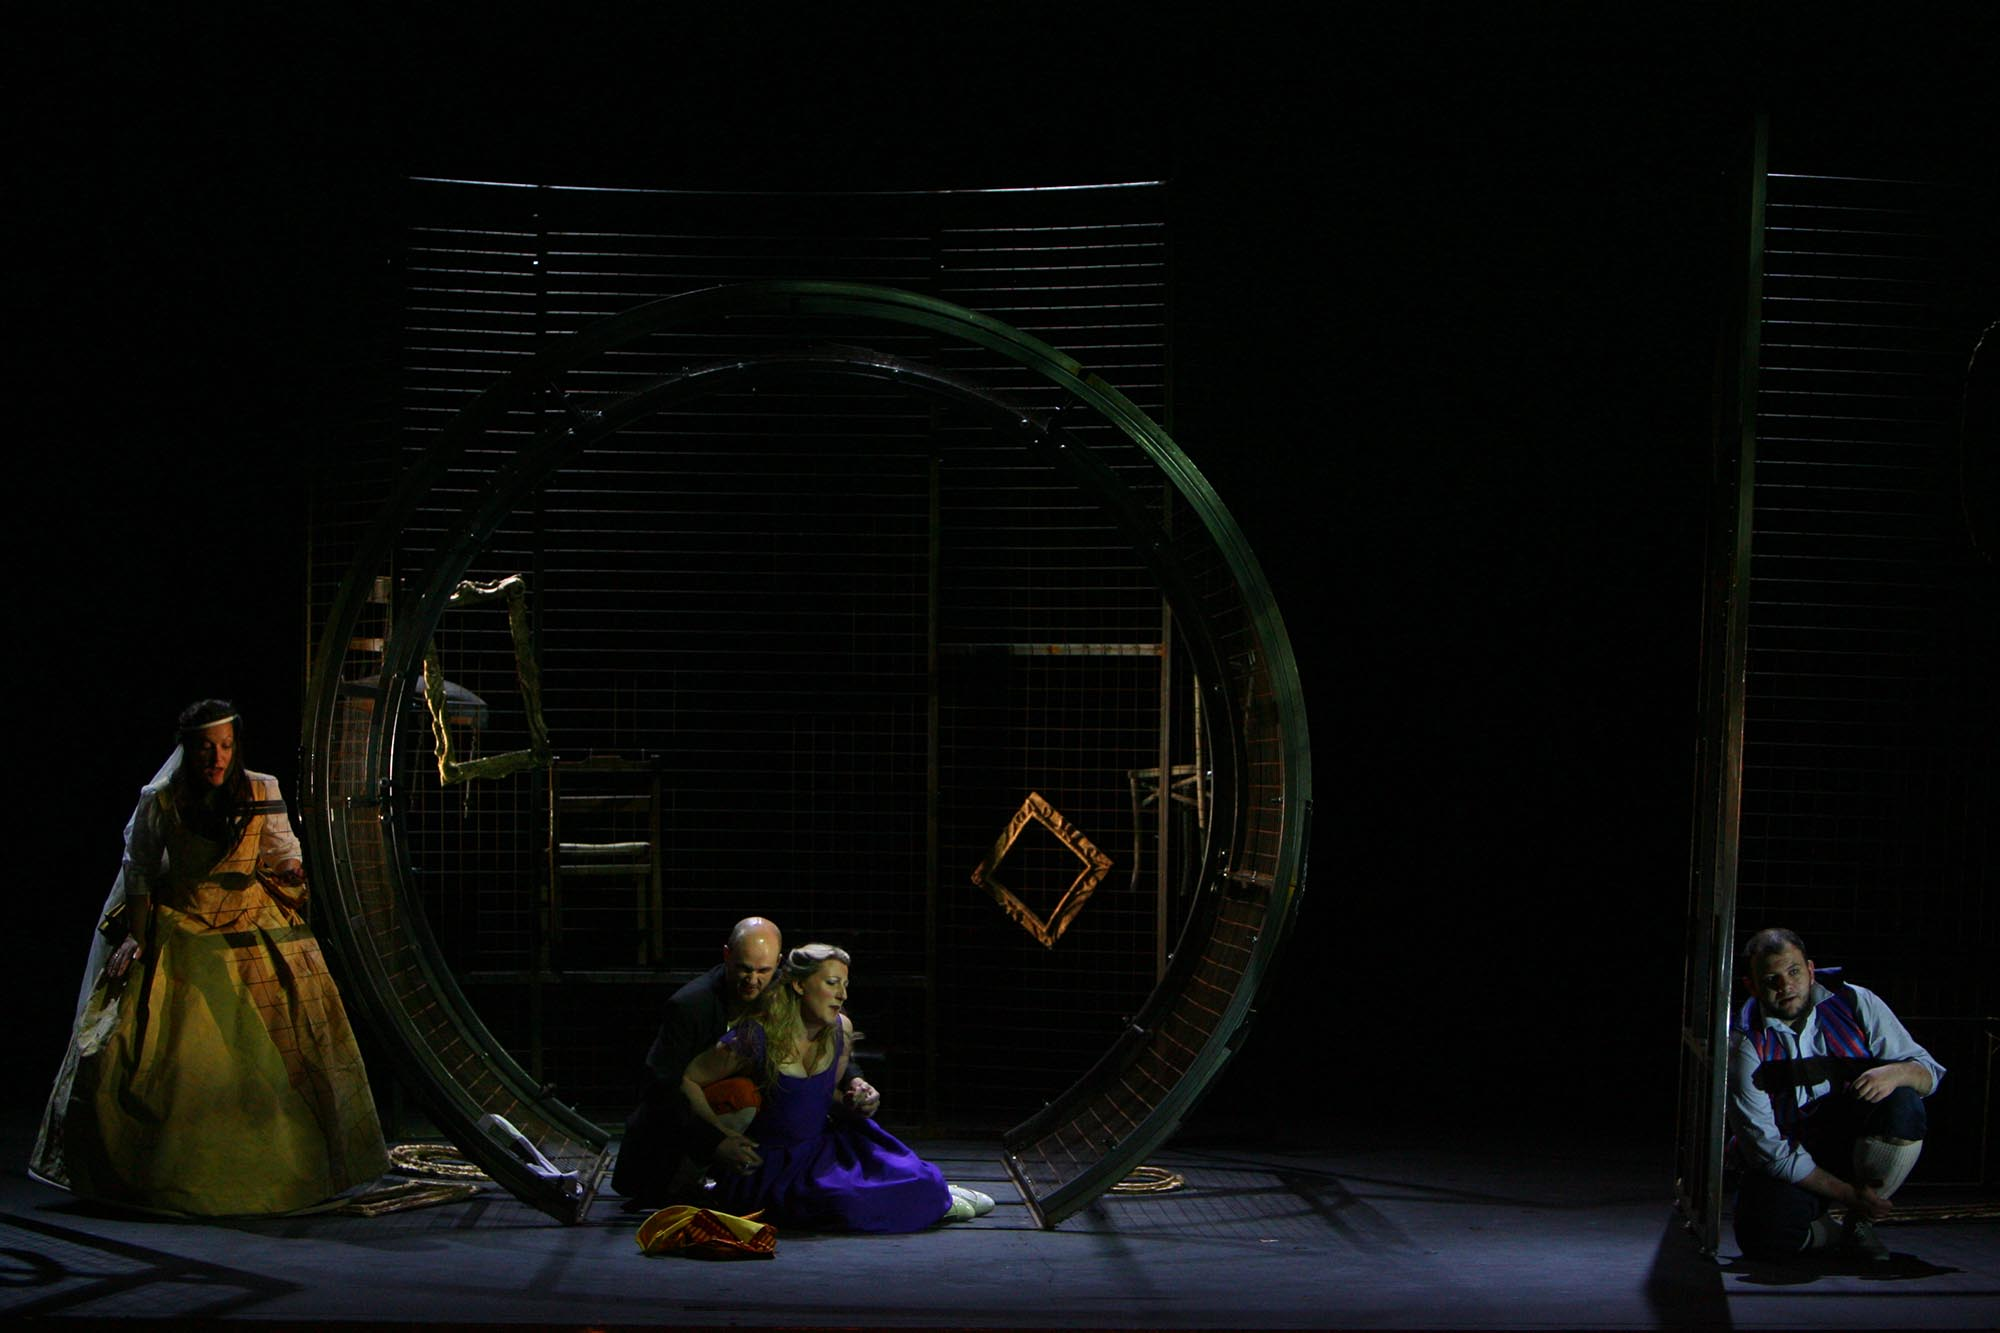 Le-nozze-di-Figaro-opera-directed-by-Jacopo-Spirei--in-London-6